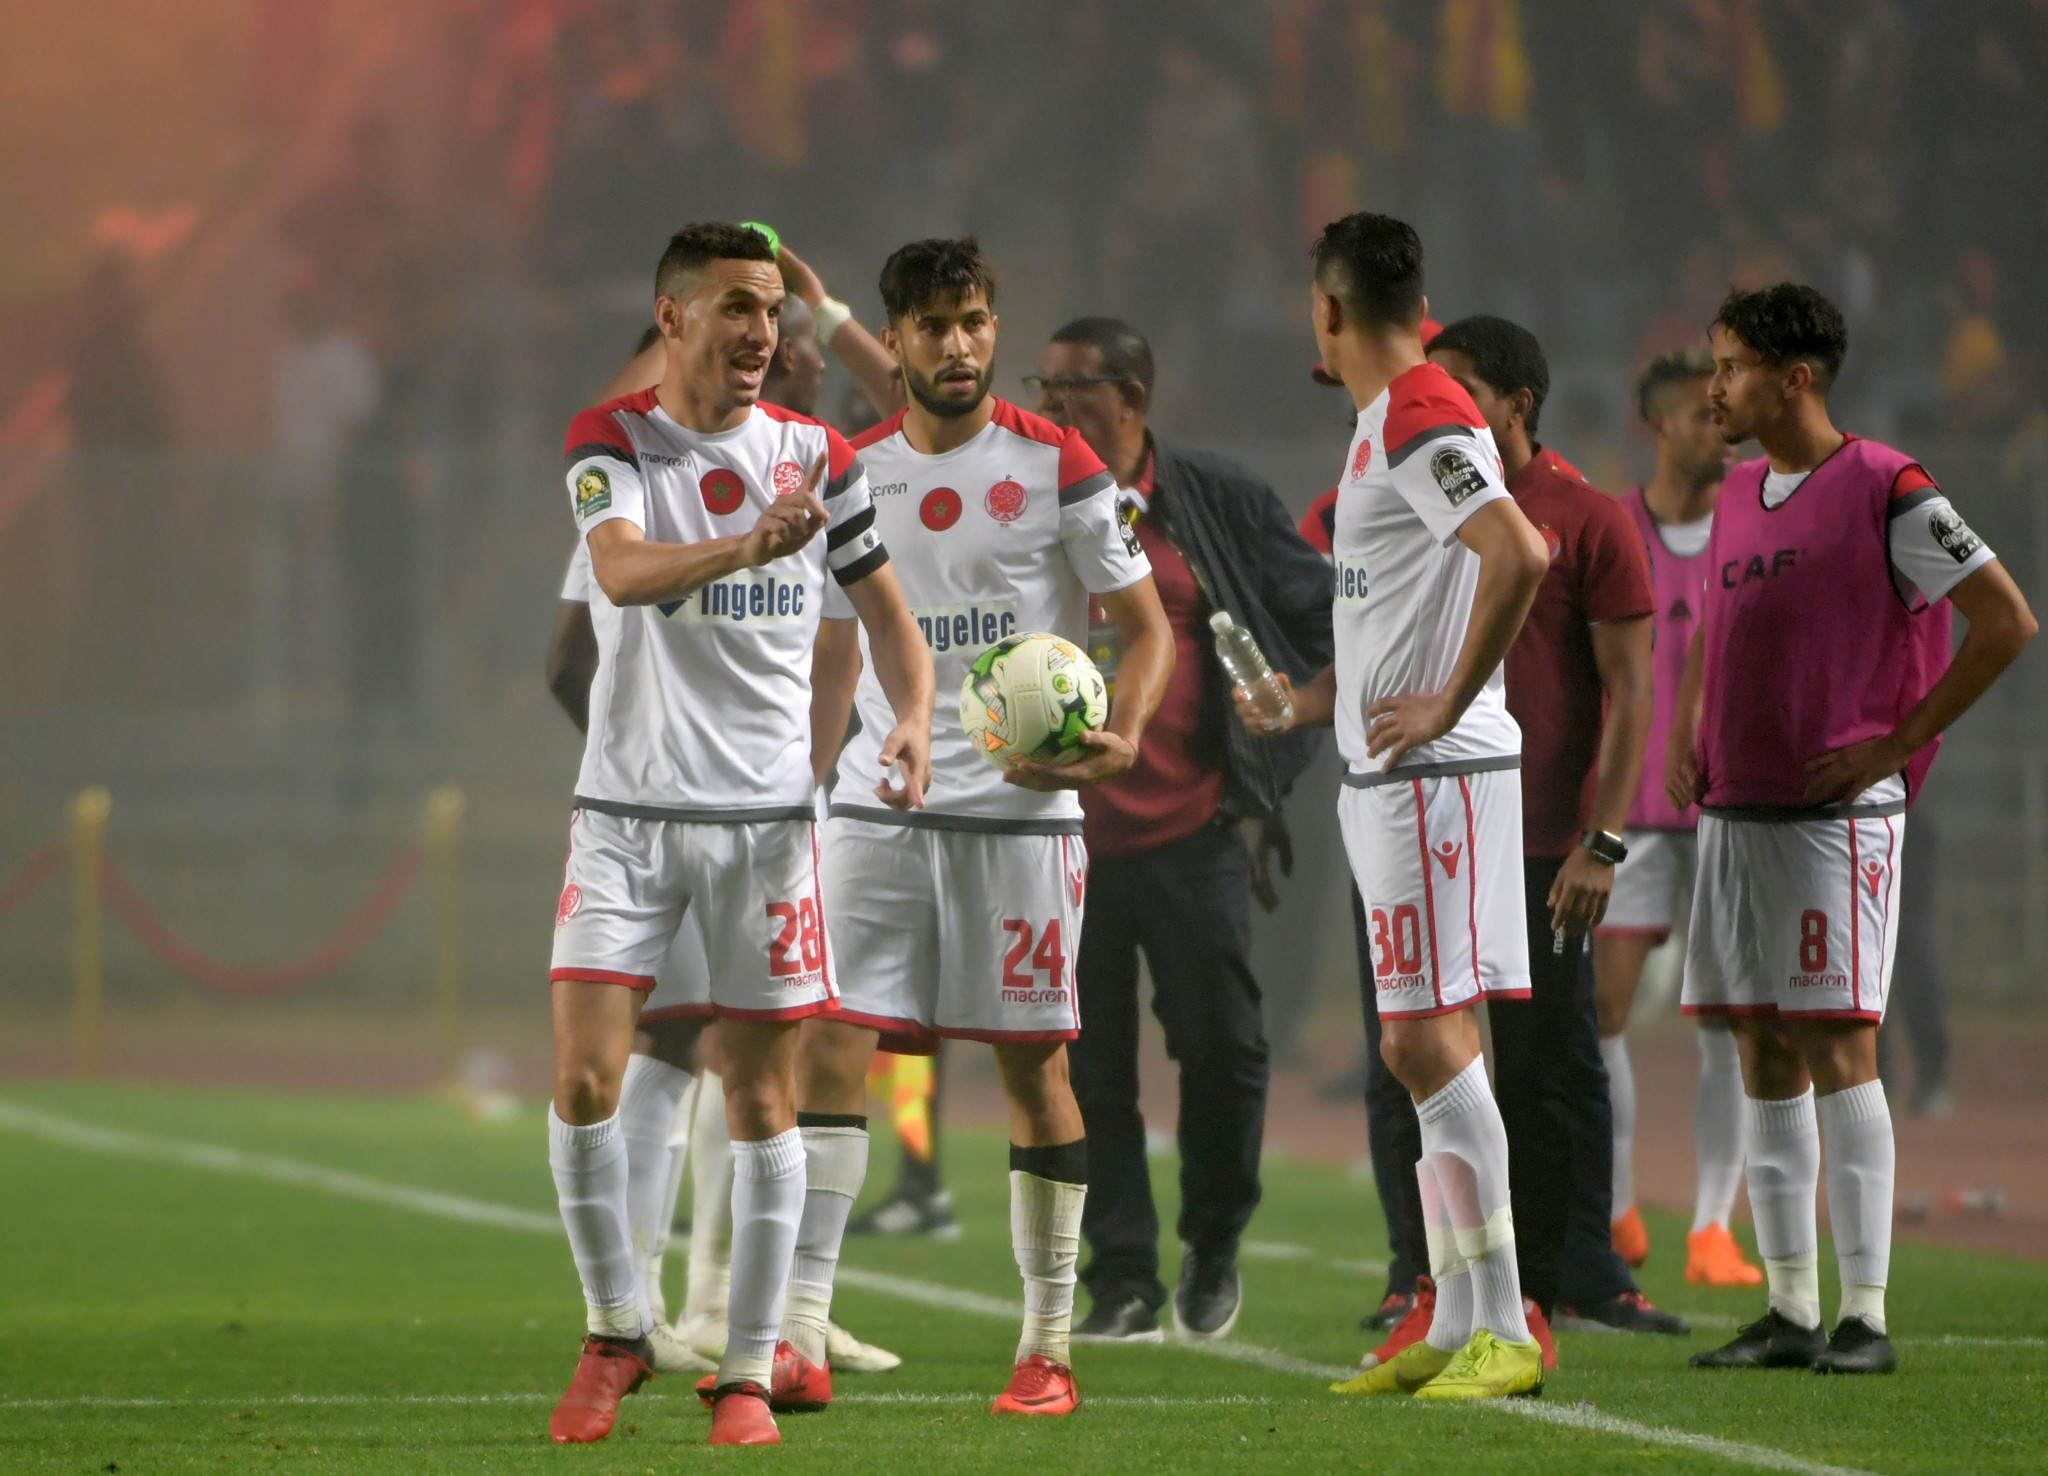 Wydad Casablanca's players refused to continue the match and Esperance were awarded the victory ©Getty Images